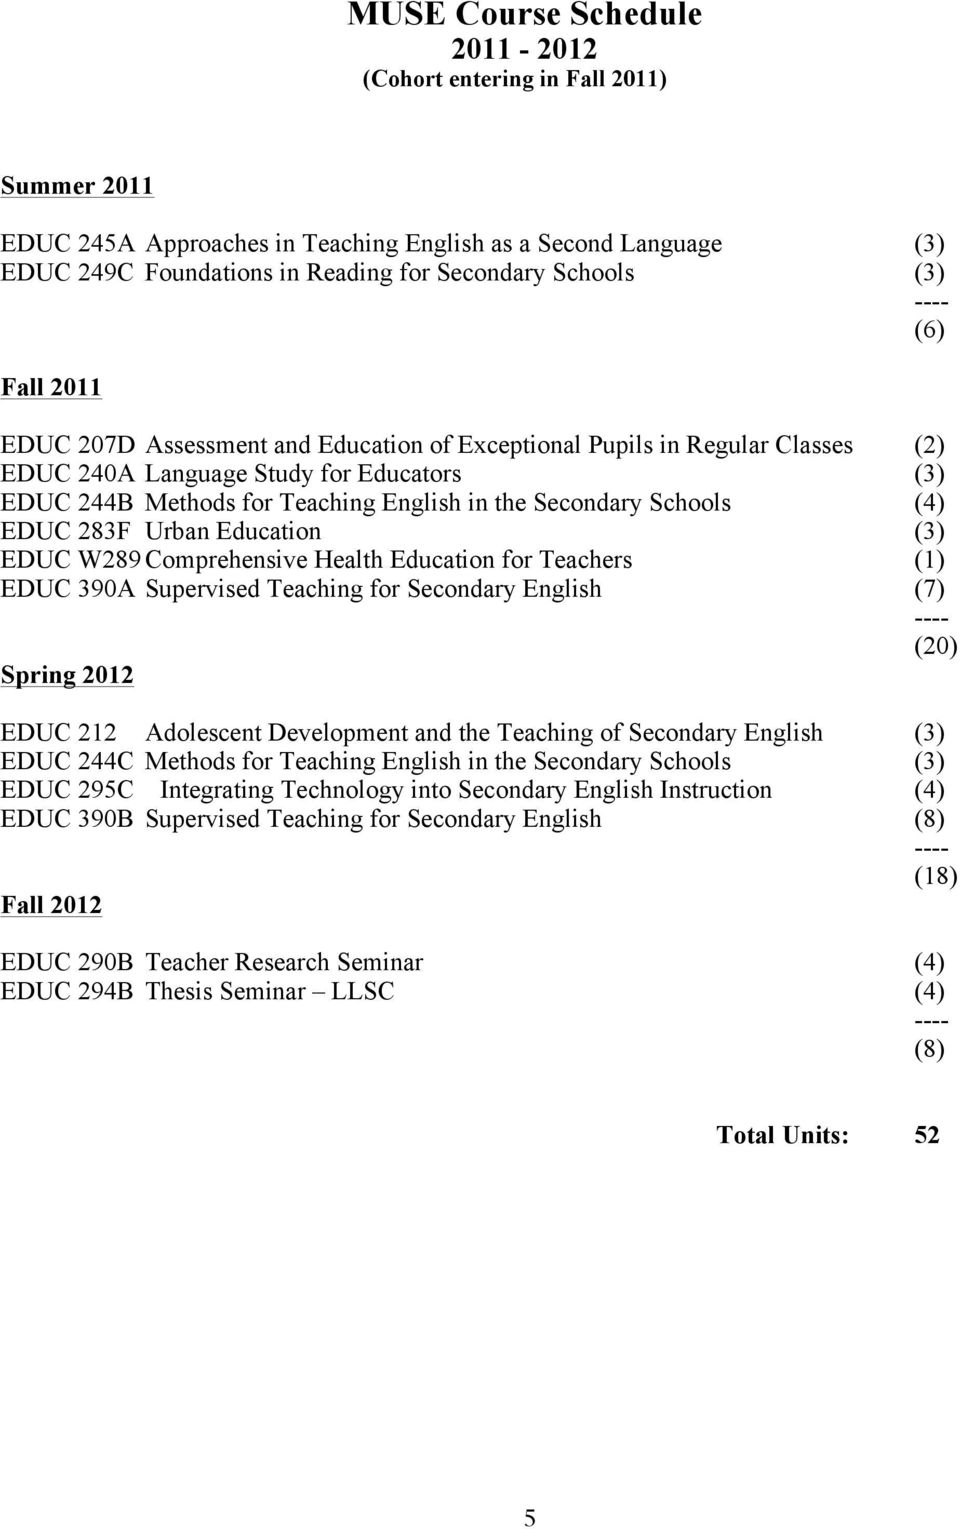 Schools (4) EDUC 283F Urban Education (3) EDUC W289 Comprehensive Health Education for Teachers (1) EDUC 390A Supervised Teaching for Secondary English (7) (20) Spring 2012 EDUC 212 Adolescent